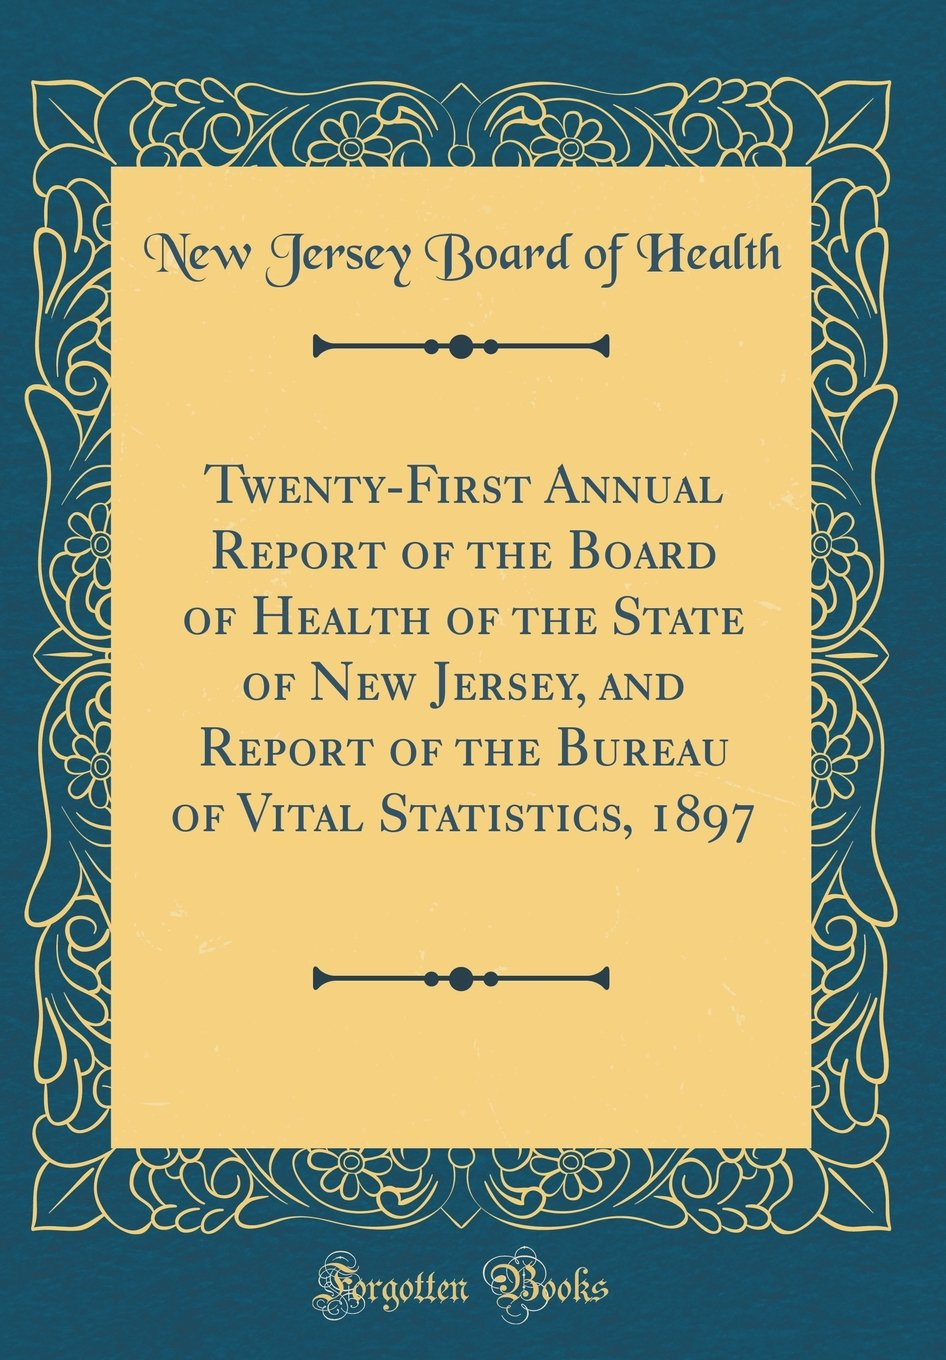 Read Online Twenty-First Annual Report of the Board of Health of the State of New Jersey, and Report of the Bureau of Vital Statistics, 1897 (Classic Reprint) pdf epub